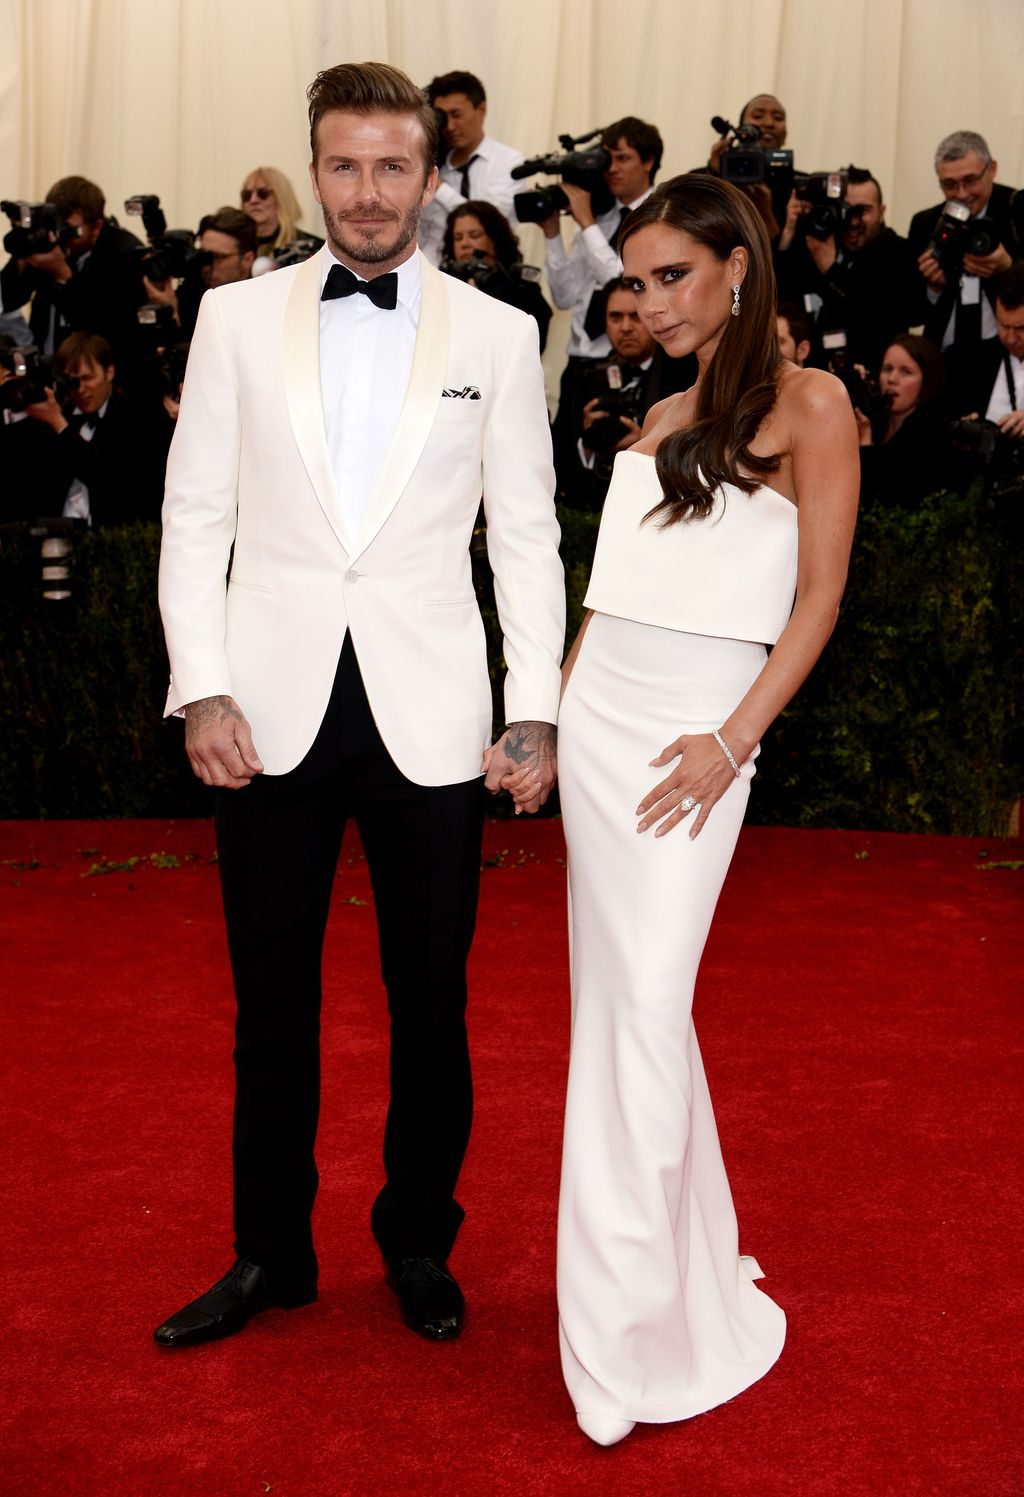 NEW YORK, NY - MAY 05:  David Beckham and Victoria Beckham attend the